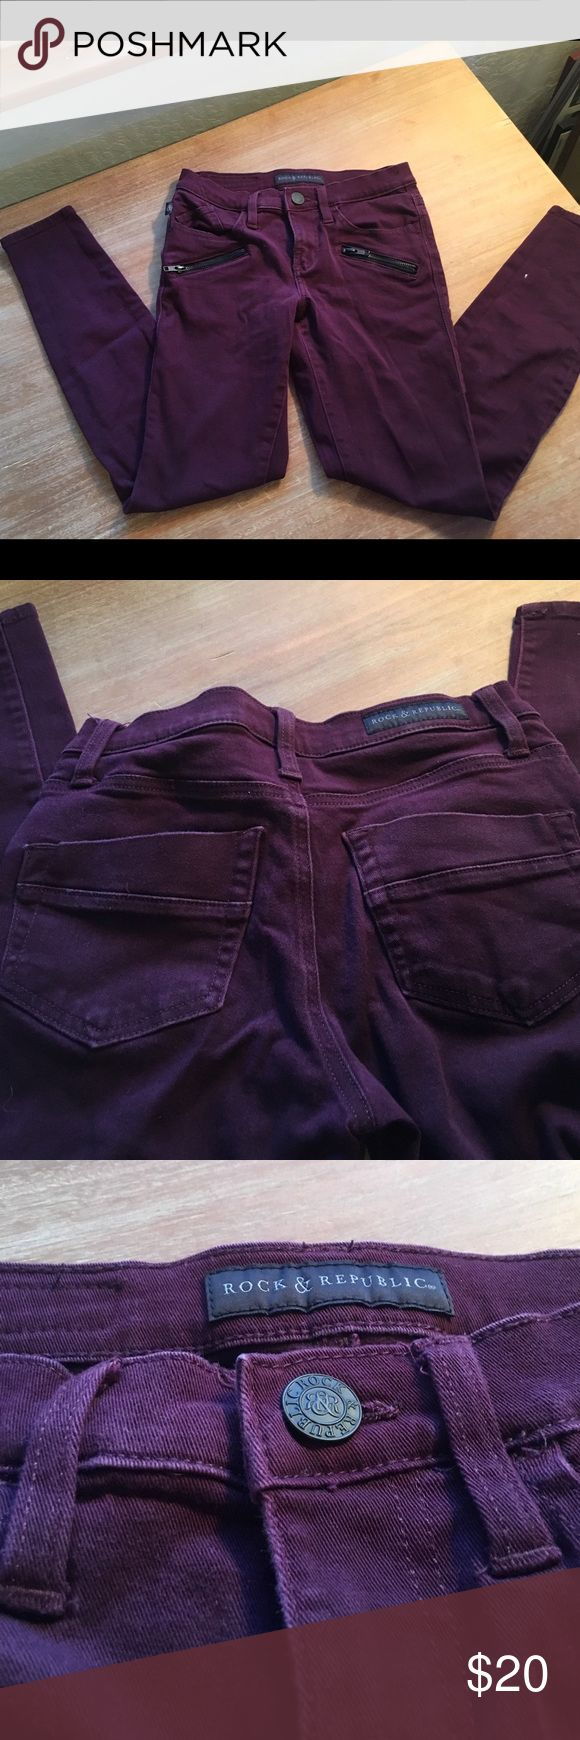 Maroon skinny jeans I absolutely love these jeans however sadly they are too small on me. They have black zippers under the pockets and nice stretchy fabric. They are short on me and I'm 5'9. Rock&Republic  Jeans Skinny